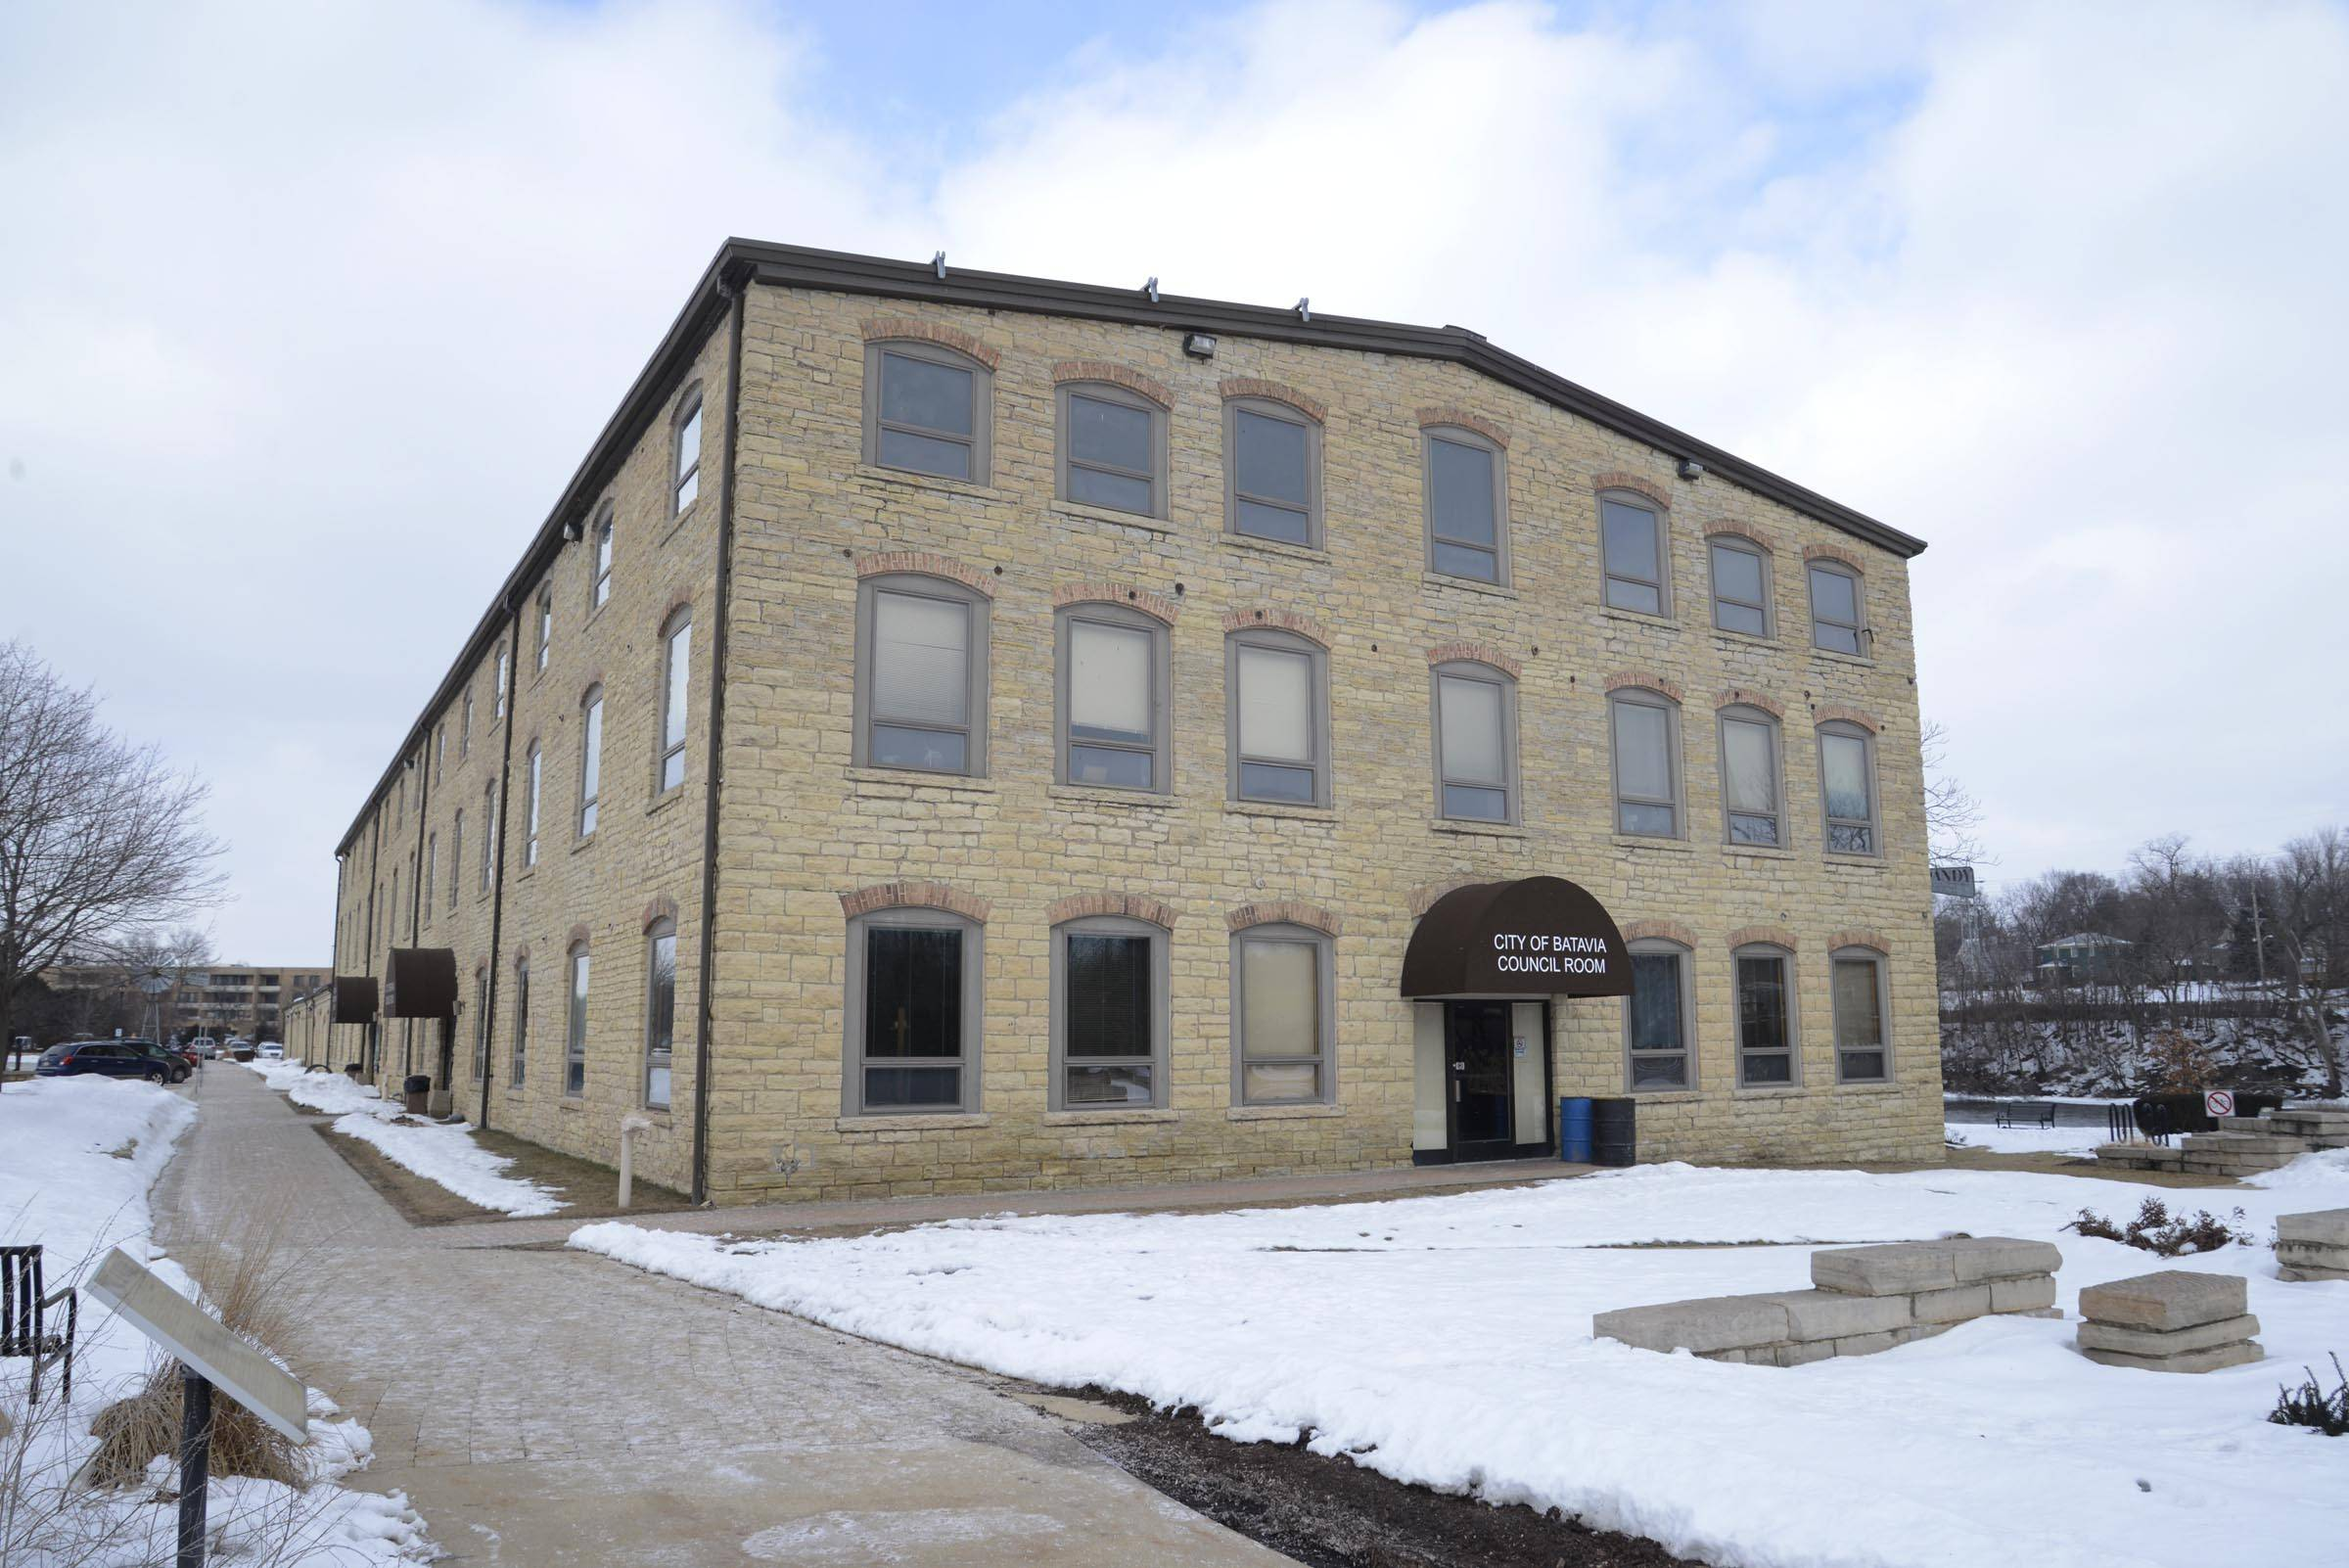 Repairs and renovations are being considered for the Batavia Government Center, including replacing all its windows.